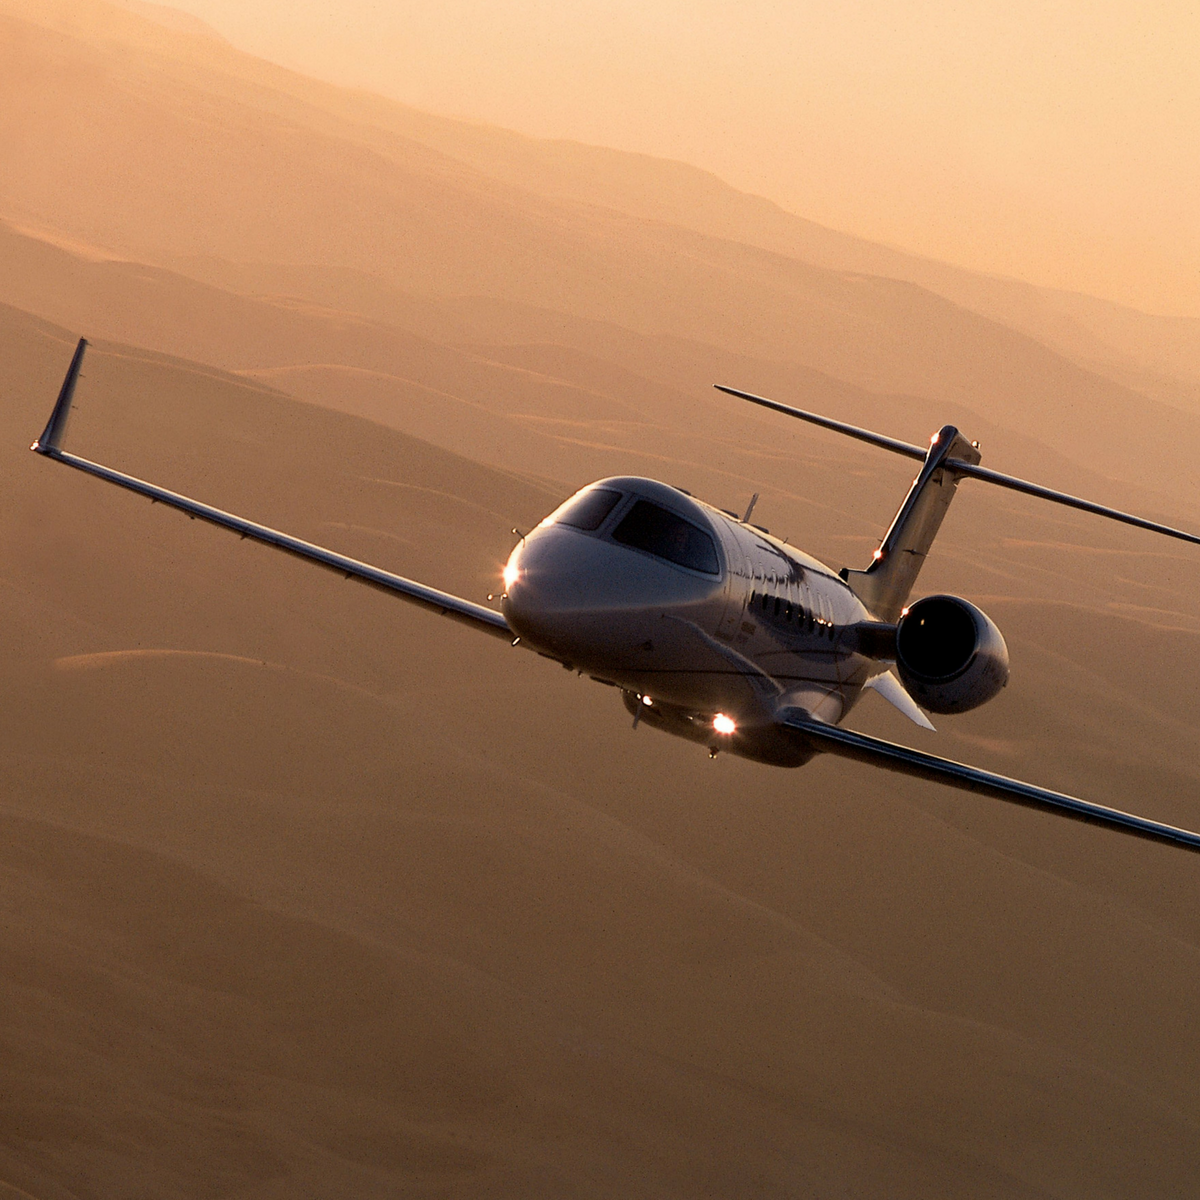 - The ideal jet for longer trips in high elevations. These aircraft are designed to provide superior overall performance while surrounding its passengers in exceptional comfort. It has excellent short-field performance and nearly coast-to-coast range, making it a go-to for all types of travel.